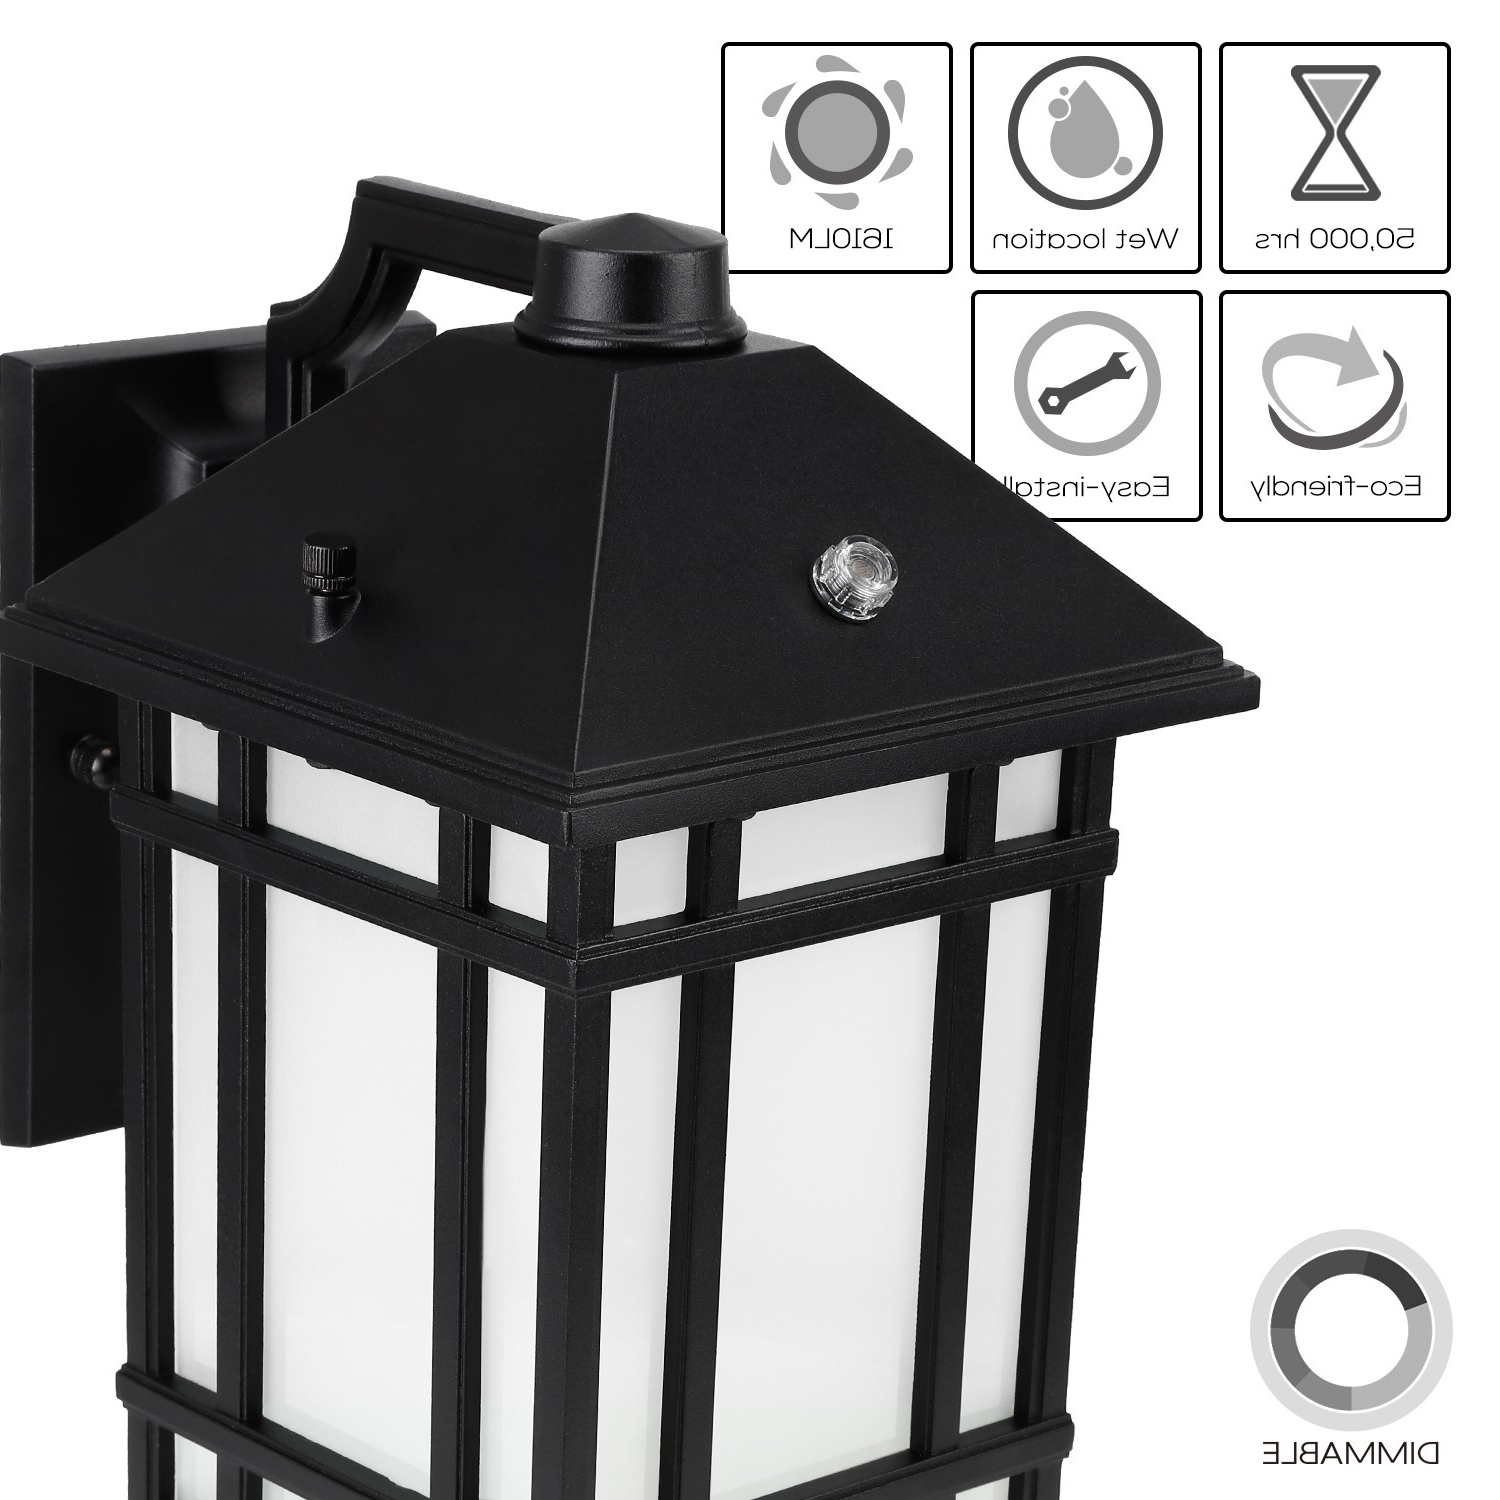 Best And Newest Led Outdoor Wall Lantern With Dusk To Dawn Photocell, 23W (130W Within Dusk To Dawn Led Outdoor Wall Lights (Gallery 9 of 20)